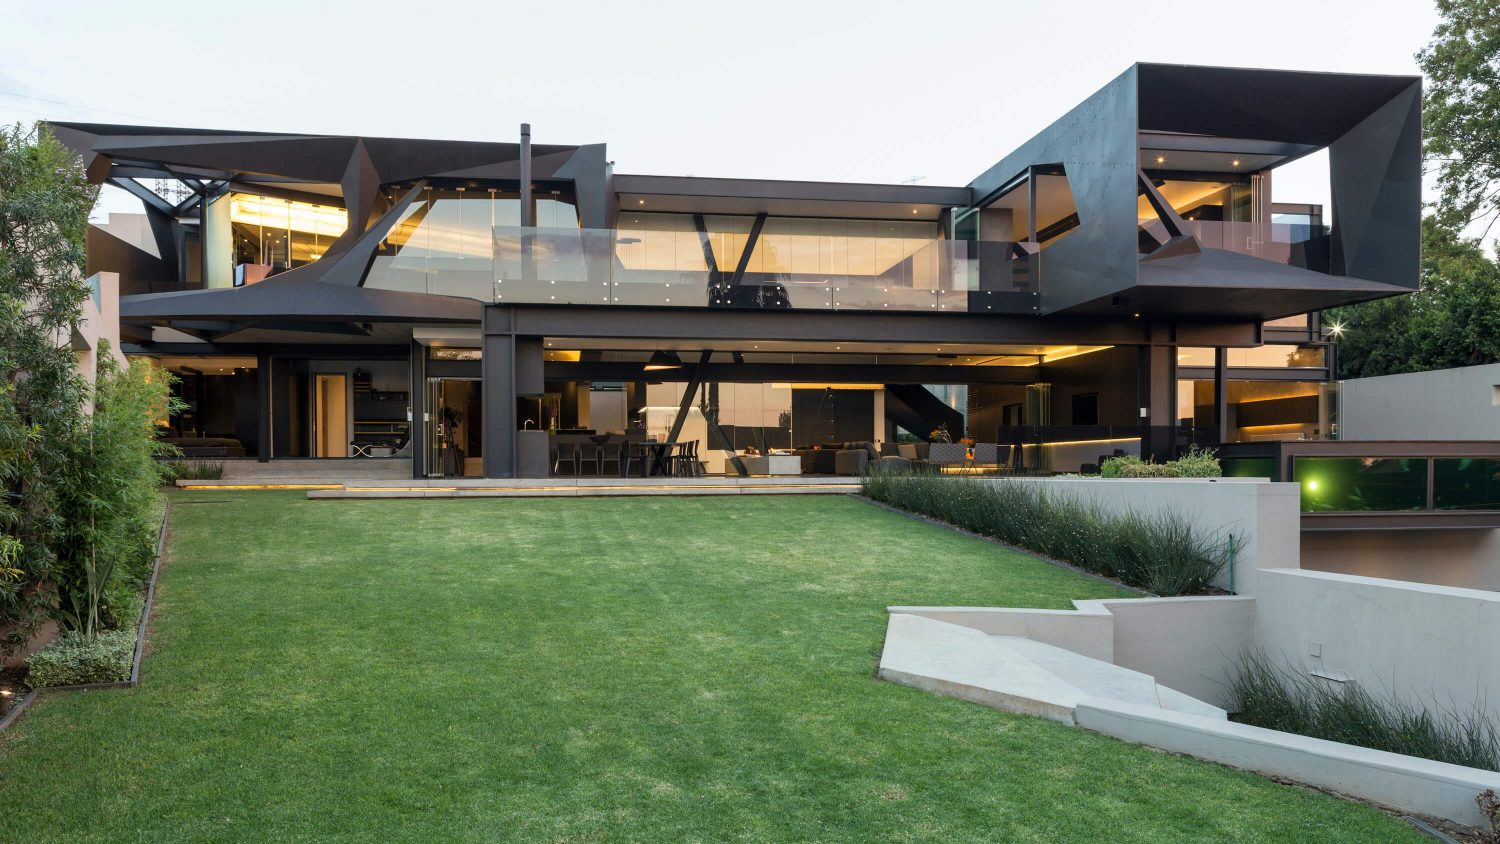 Kloof Road House by Nico van der Meulen Architects